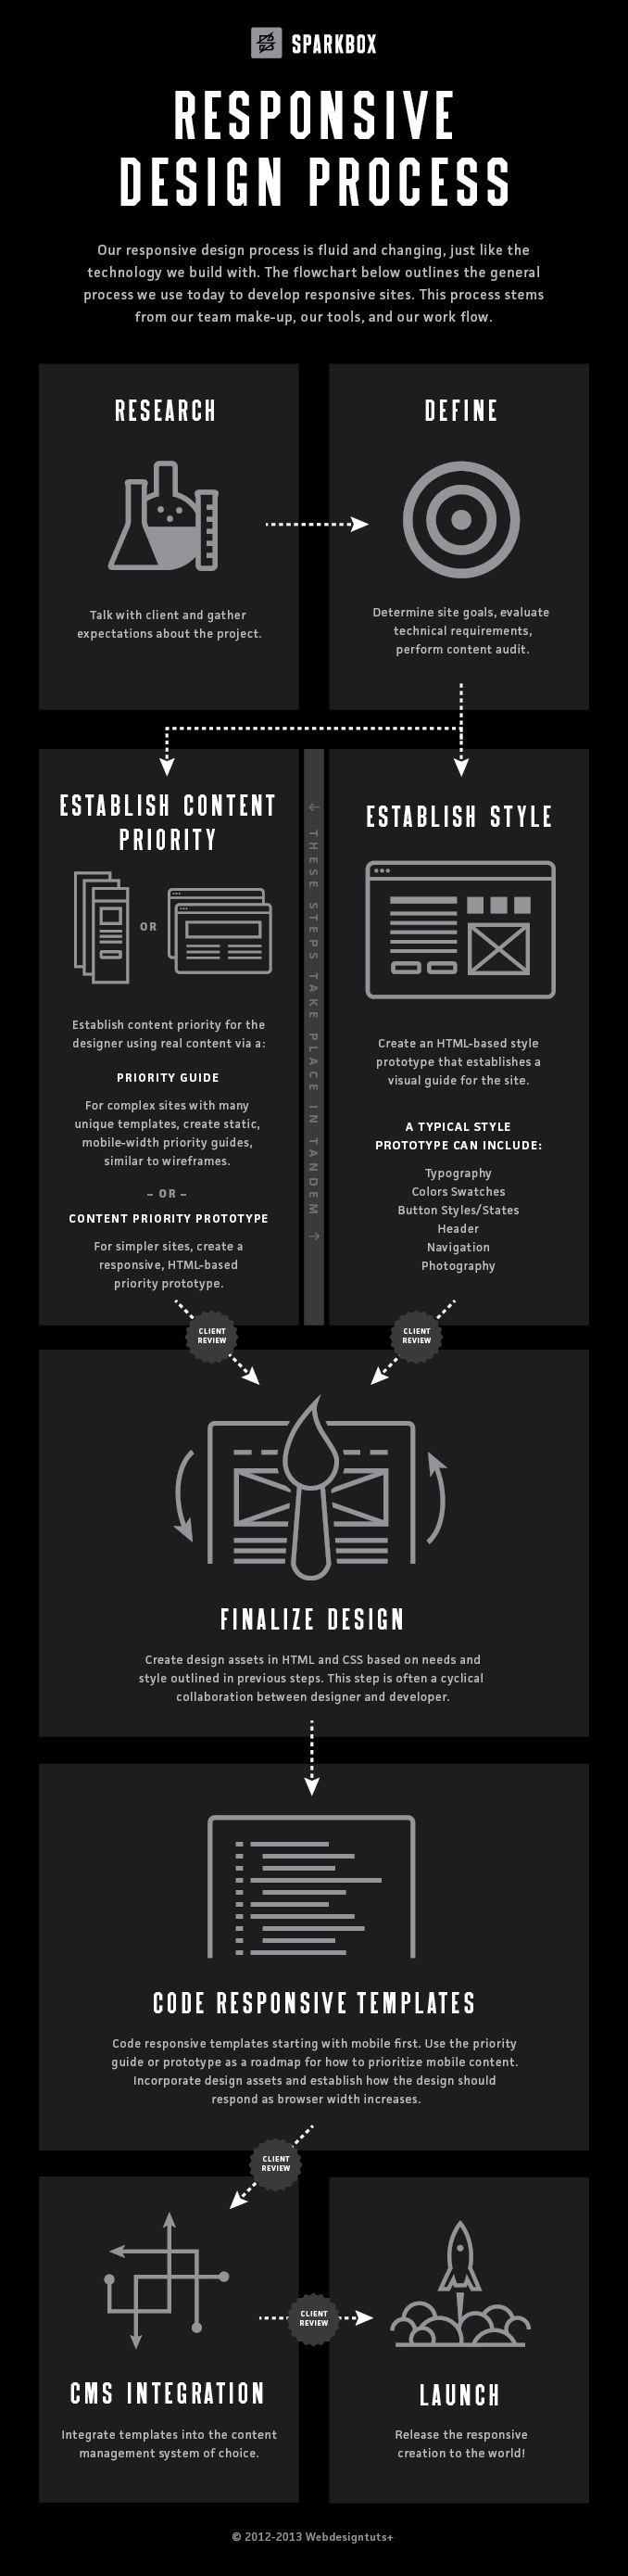 Responsive Website Design Process- Sightbox Studios #responsivewebsite #infographic